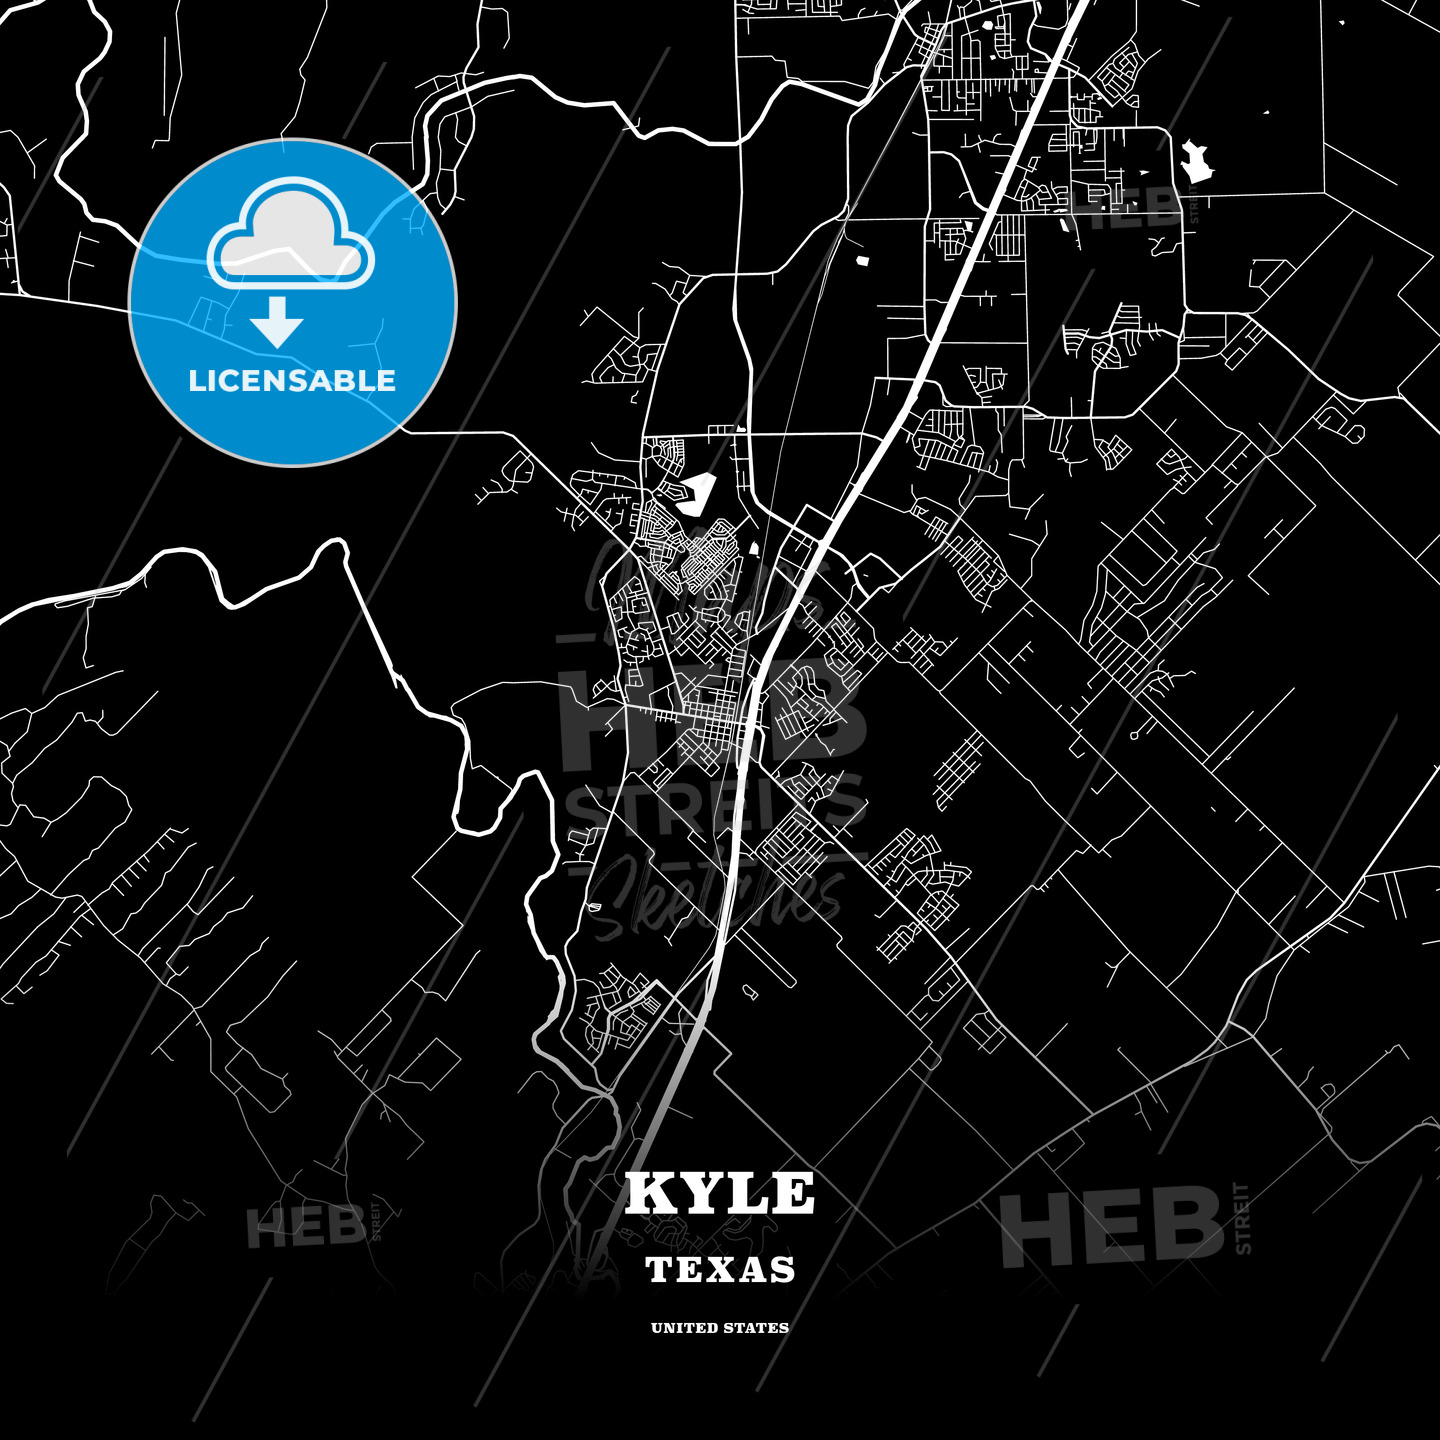 Map Of Texas Kyle.Black Map Poster Template Of Kyle Texas Usa